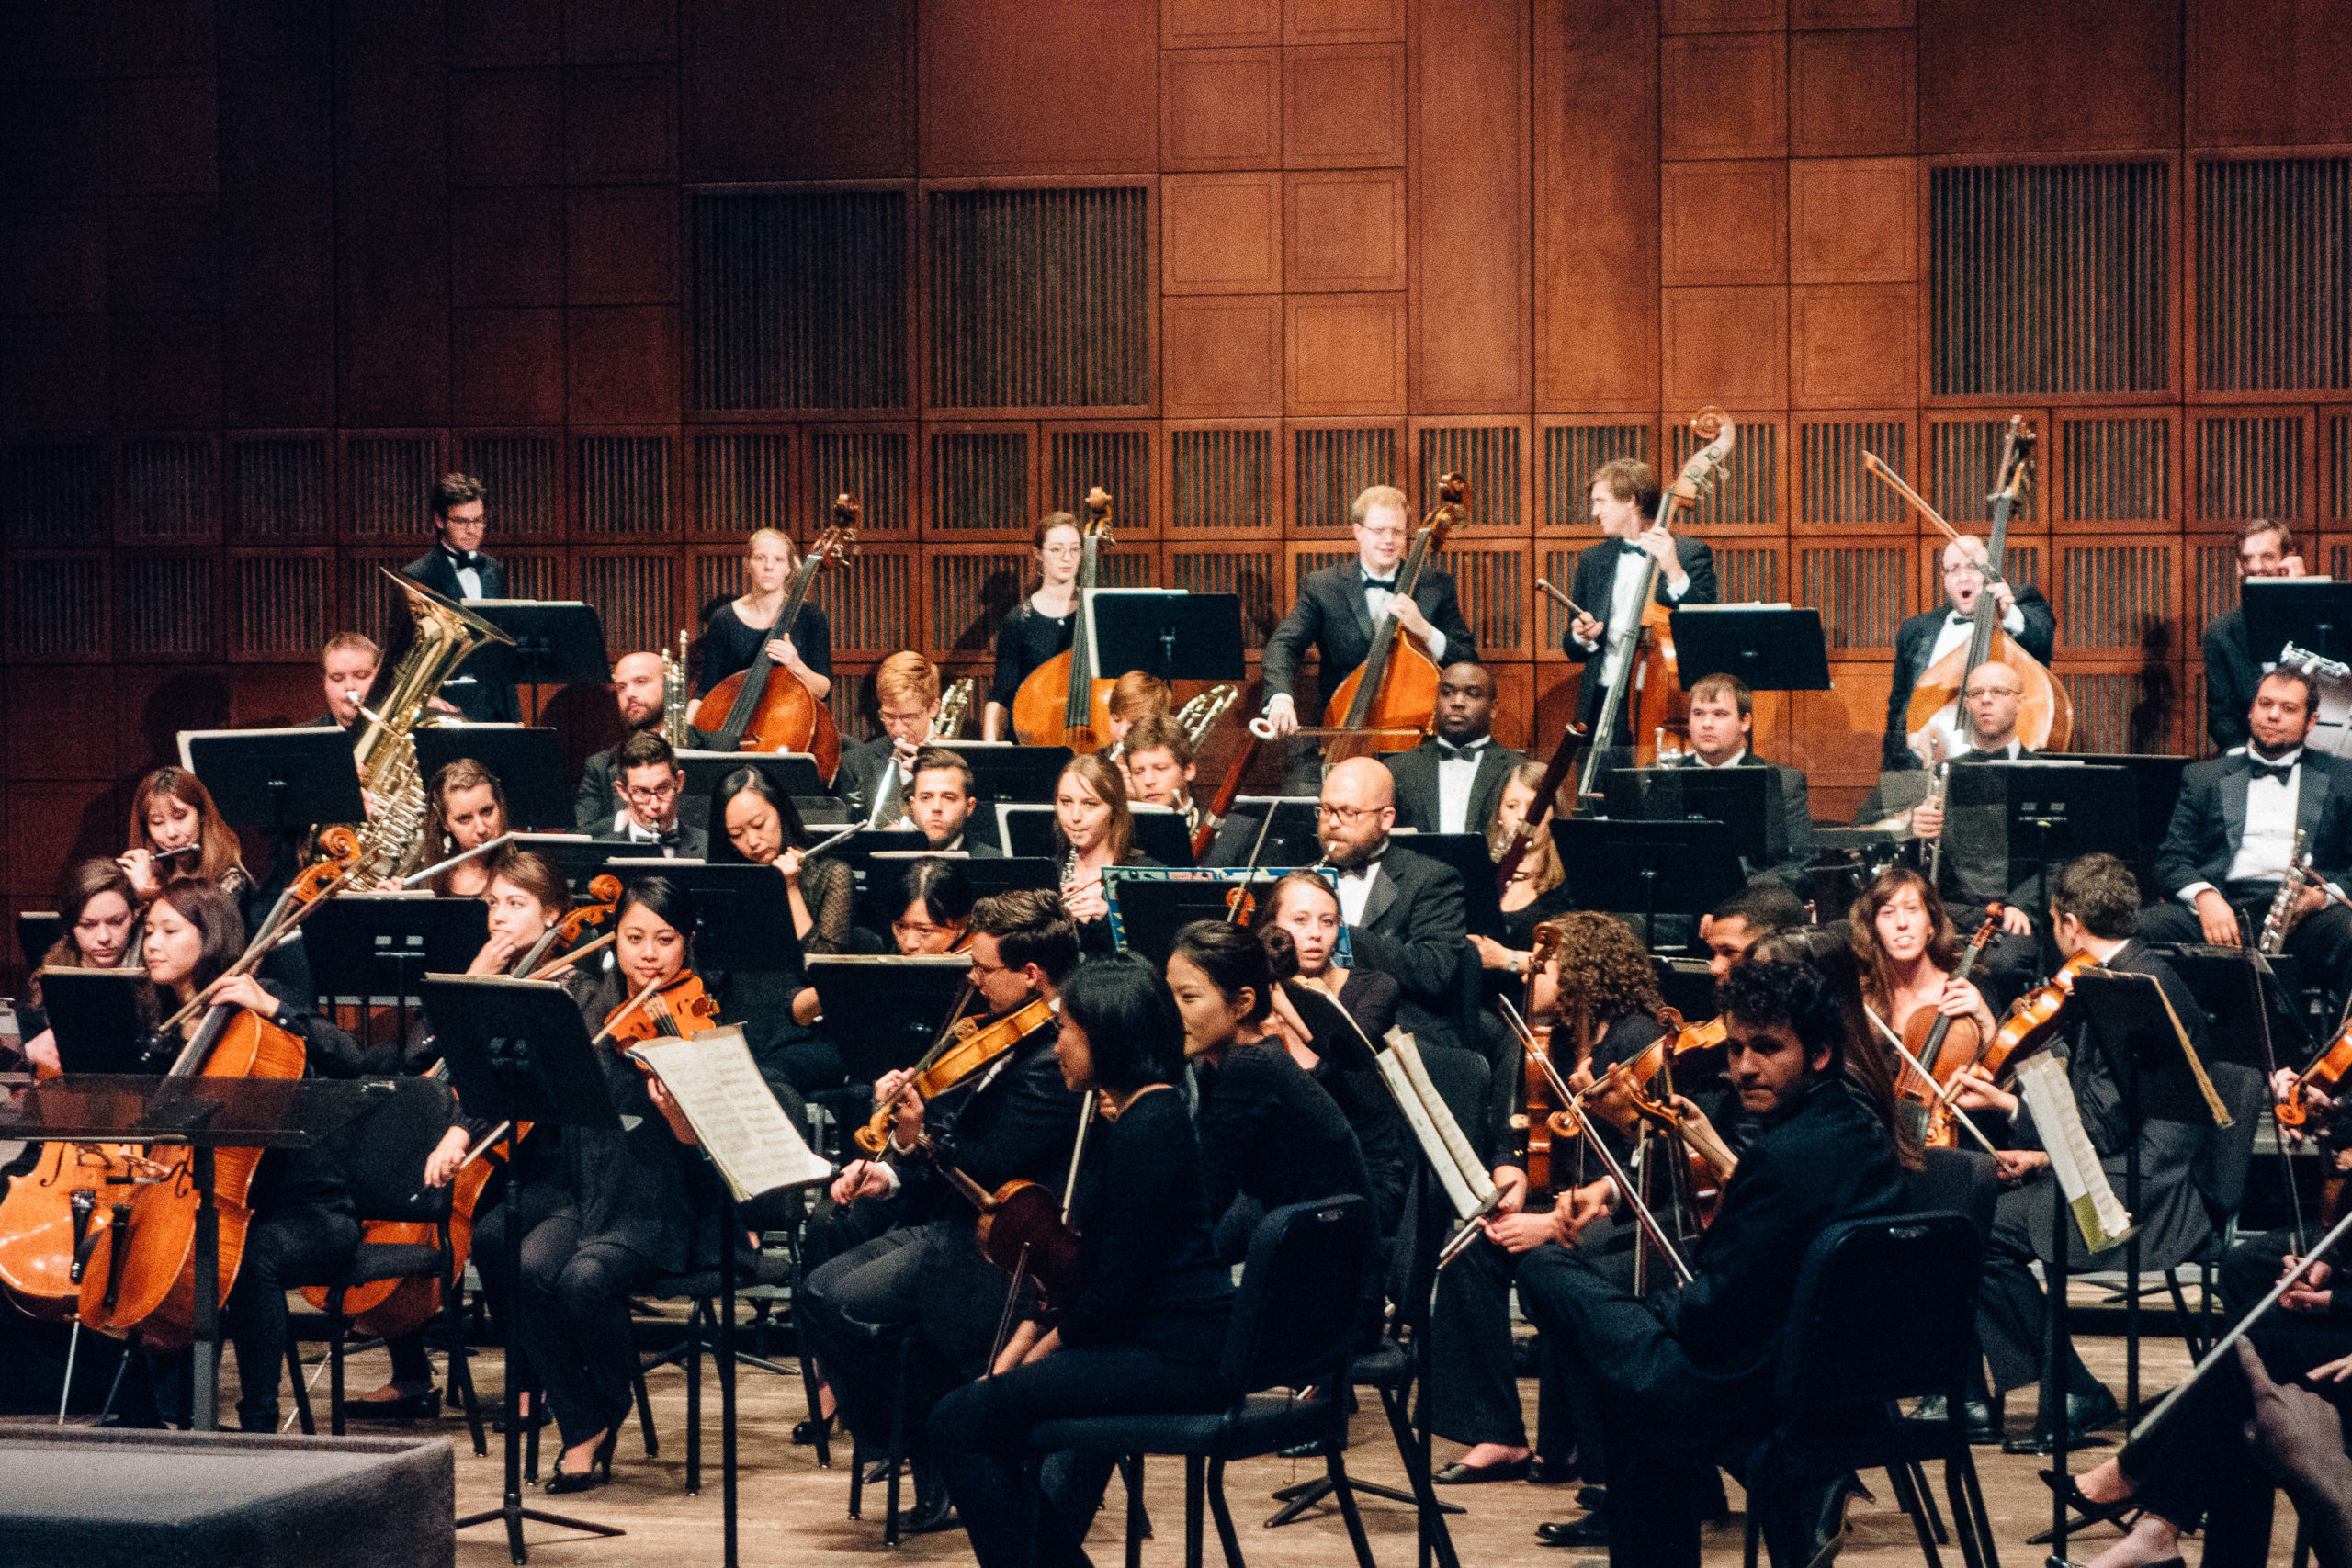 A group of classical musicians in performance